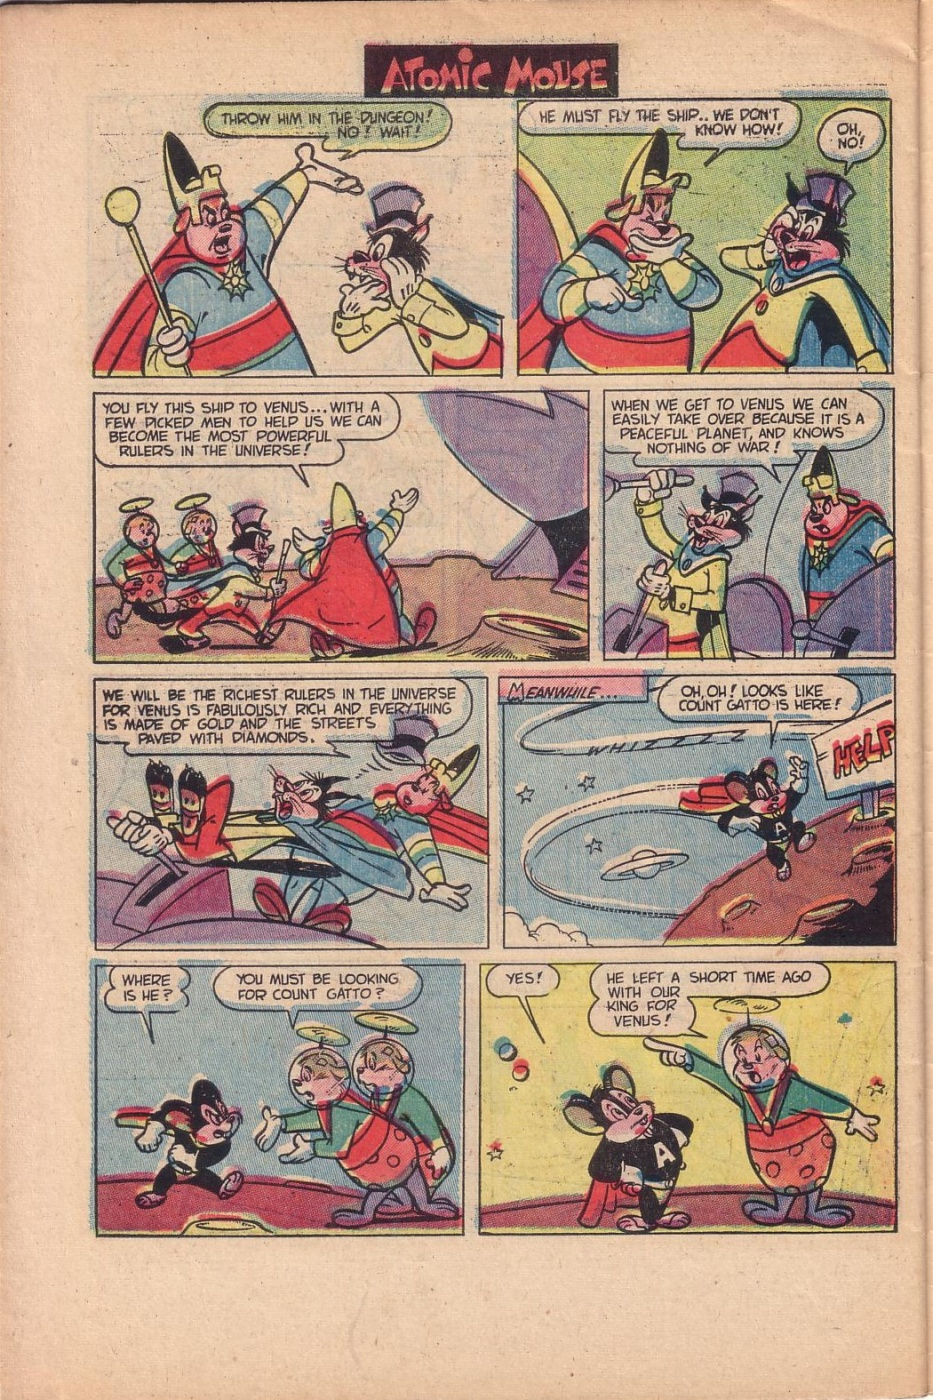 Atomic Mouse Comics - Funny Comics (30)